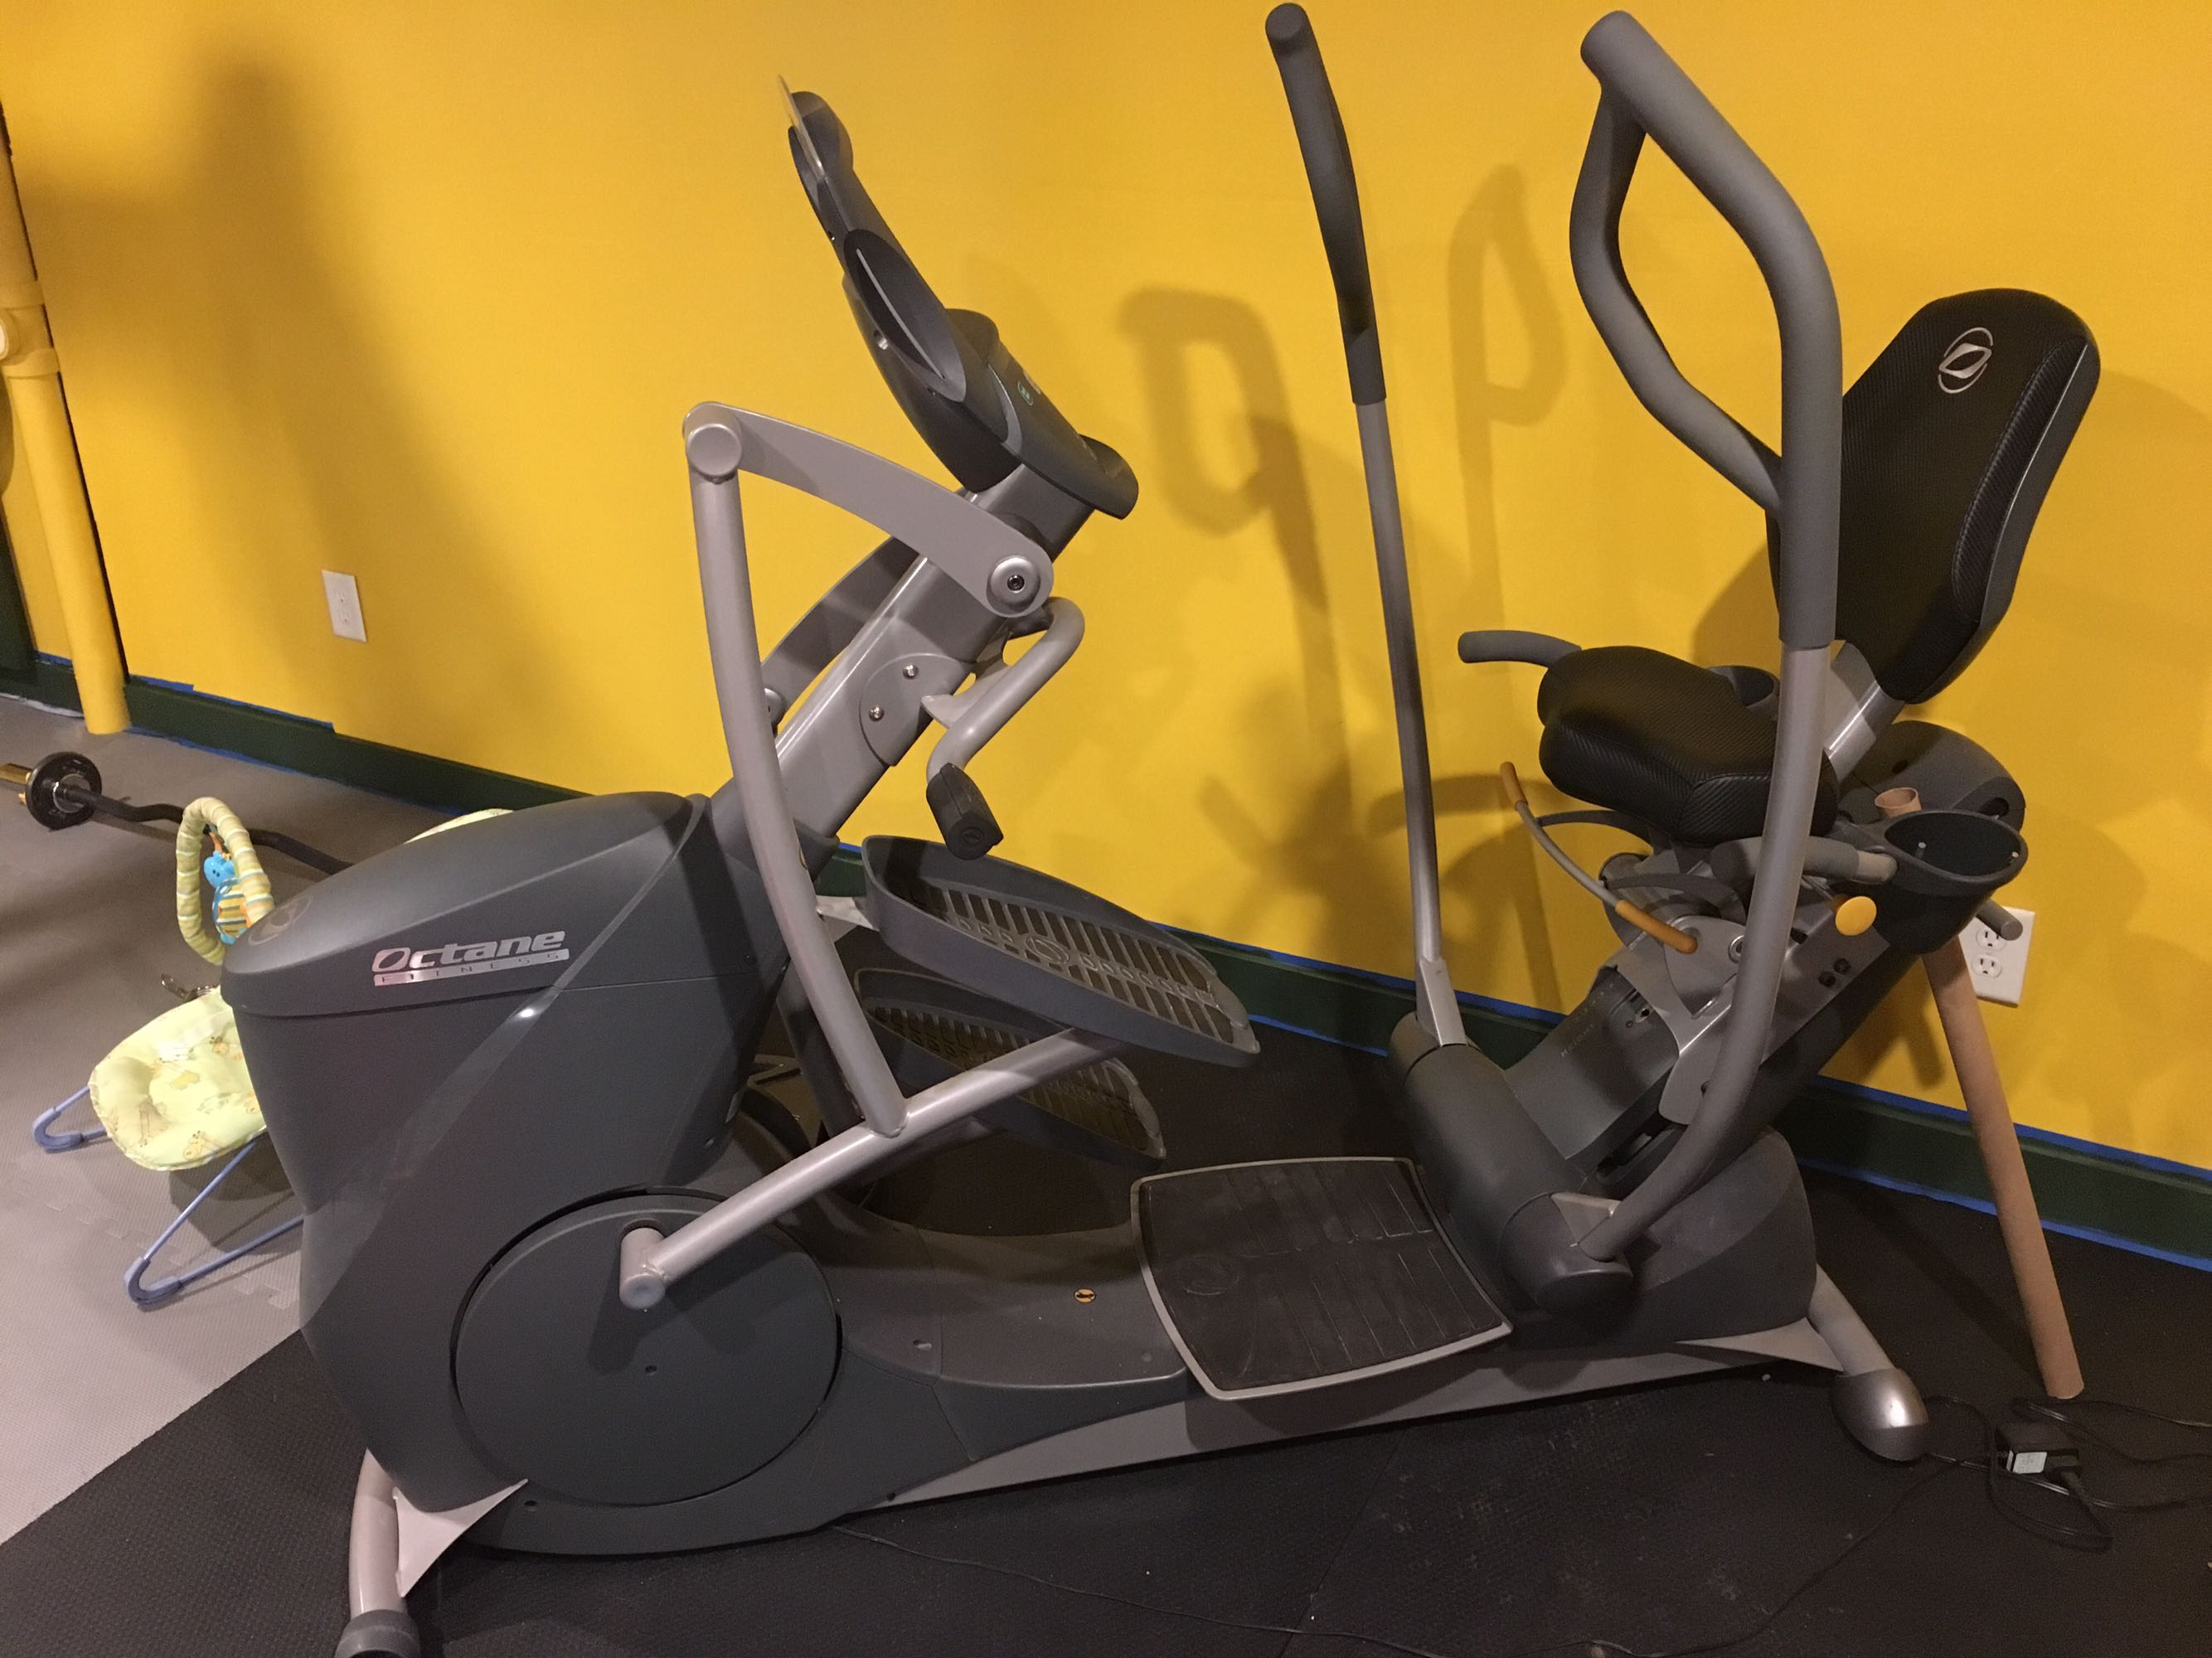 Octane Fitness xRide xR6 Seated Elliptical